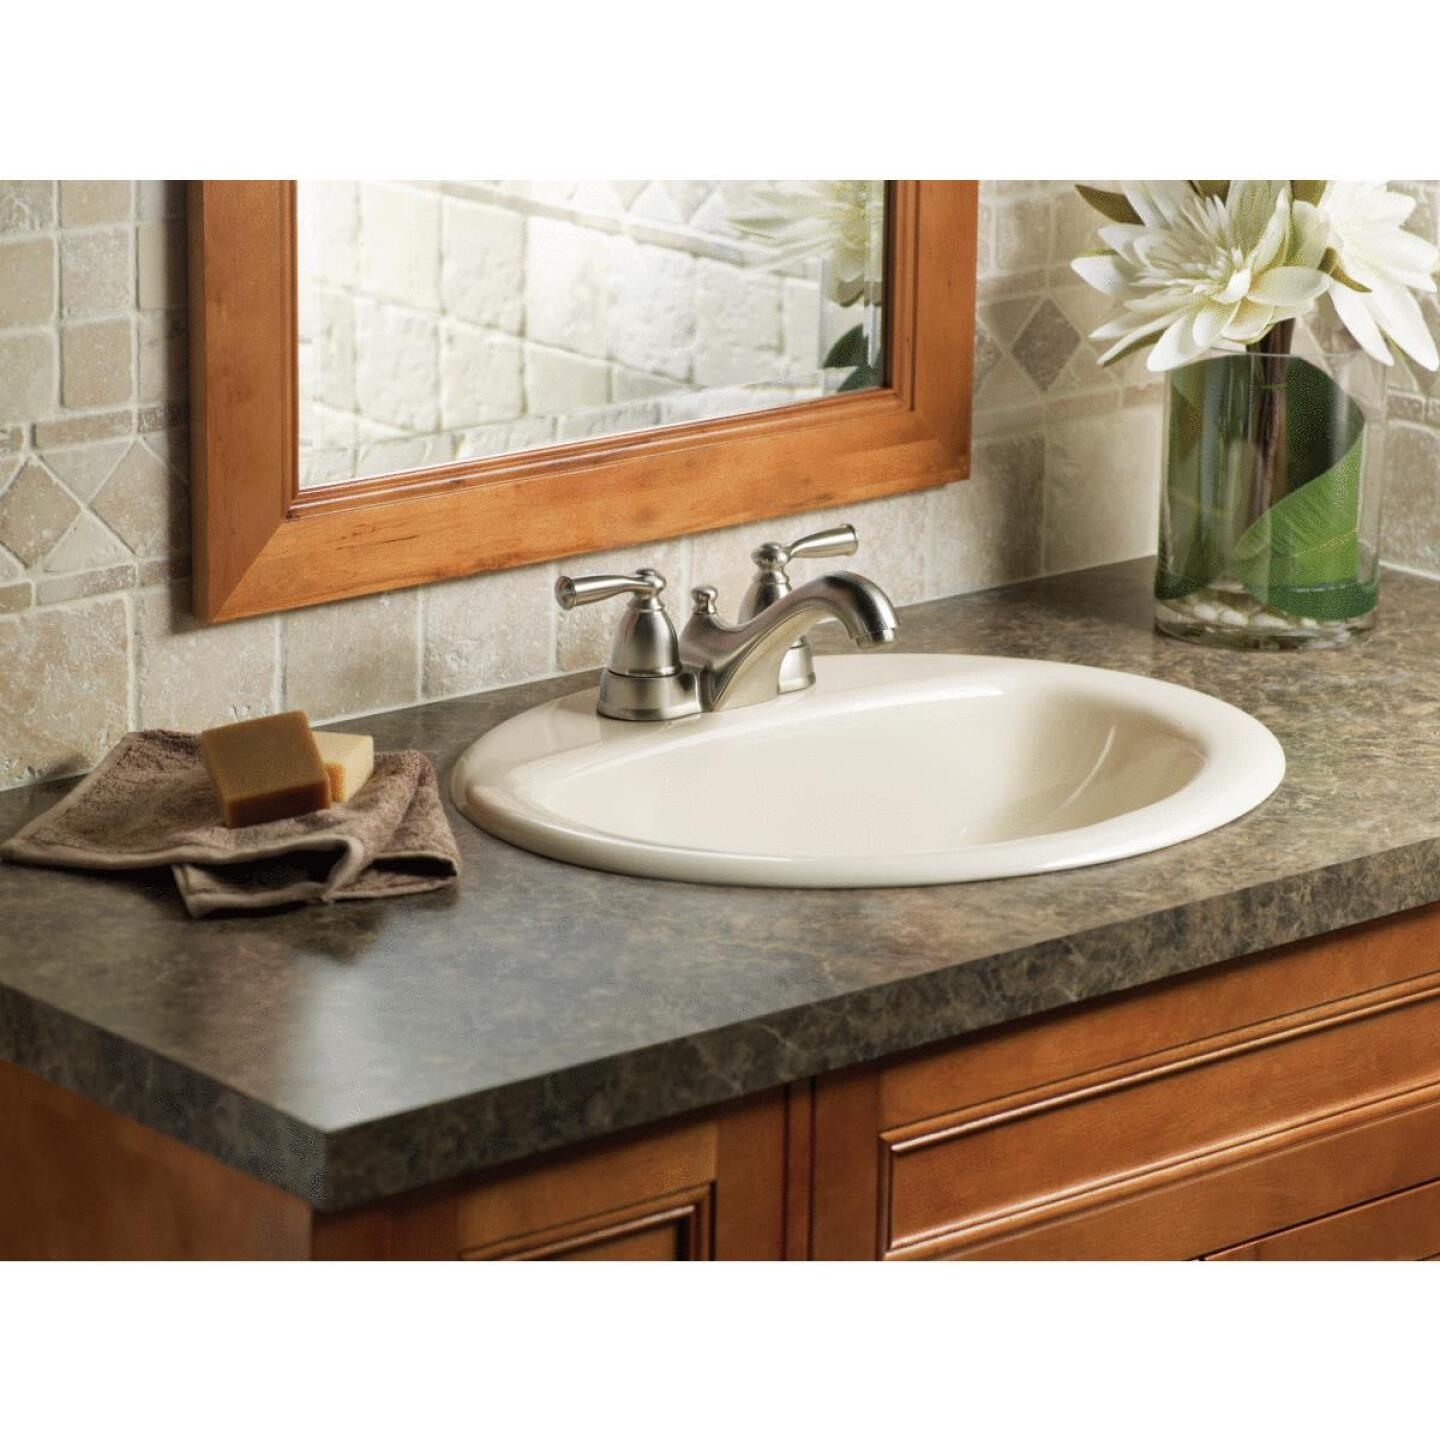 Moen Banbury Brushed Nickel 2-Handle Lever 4 In. Centerset Bathroom Faucet with Pop-Up Image 3